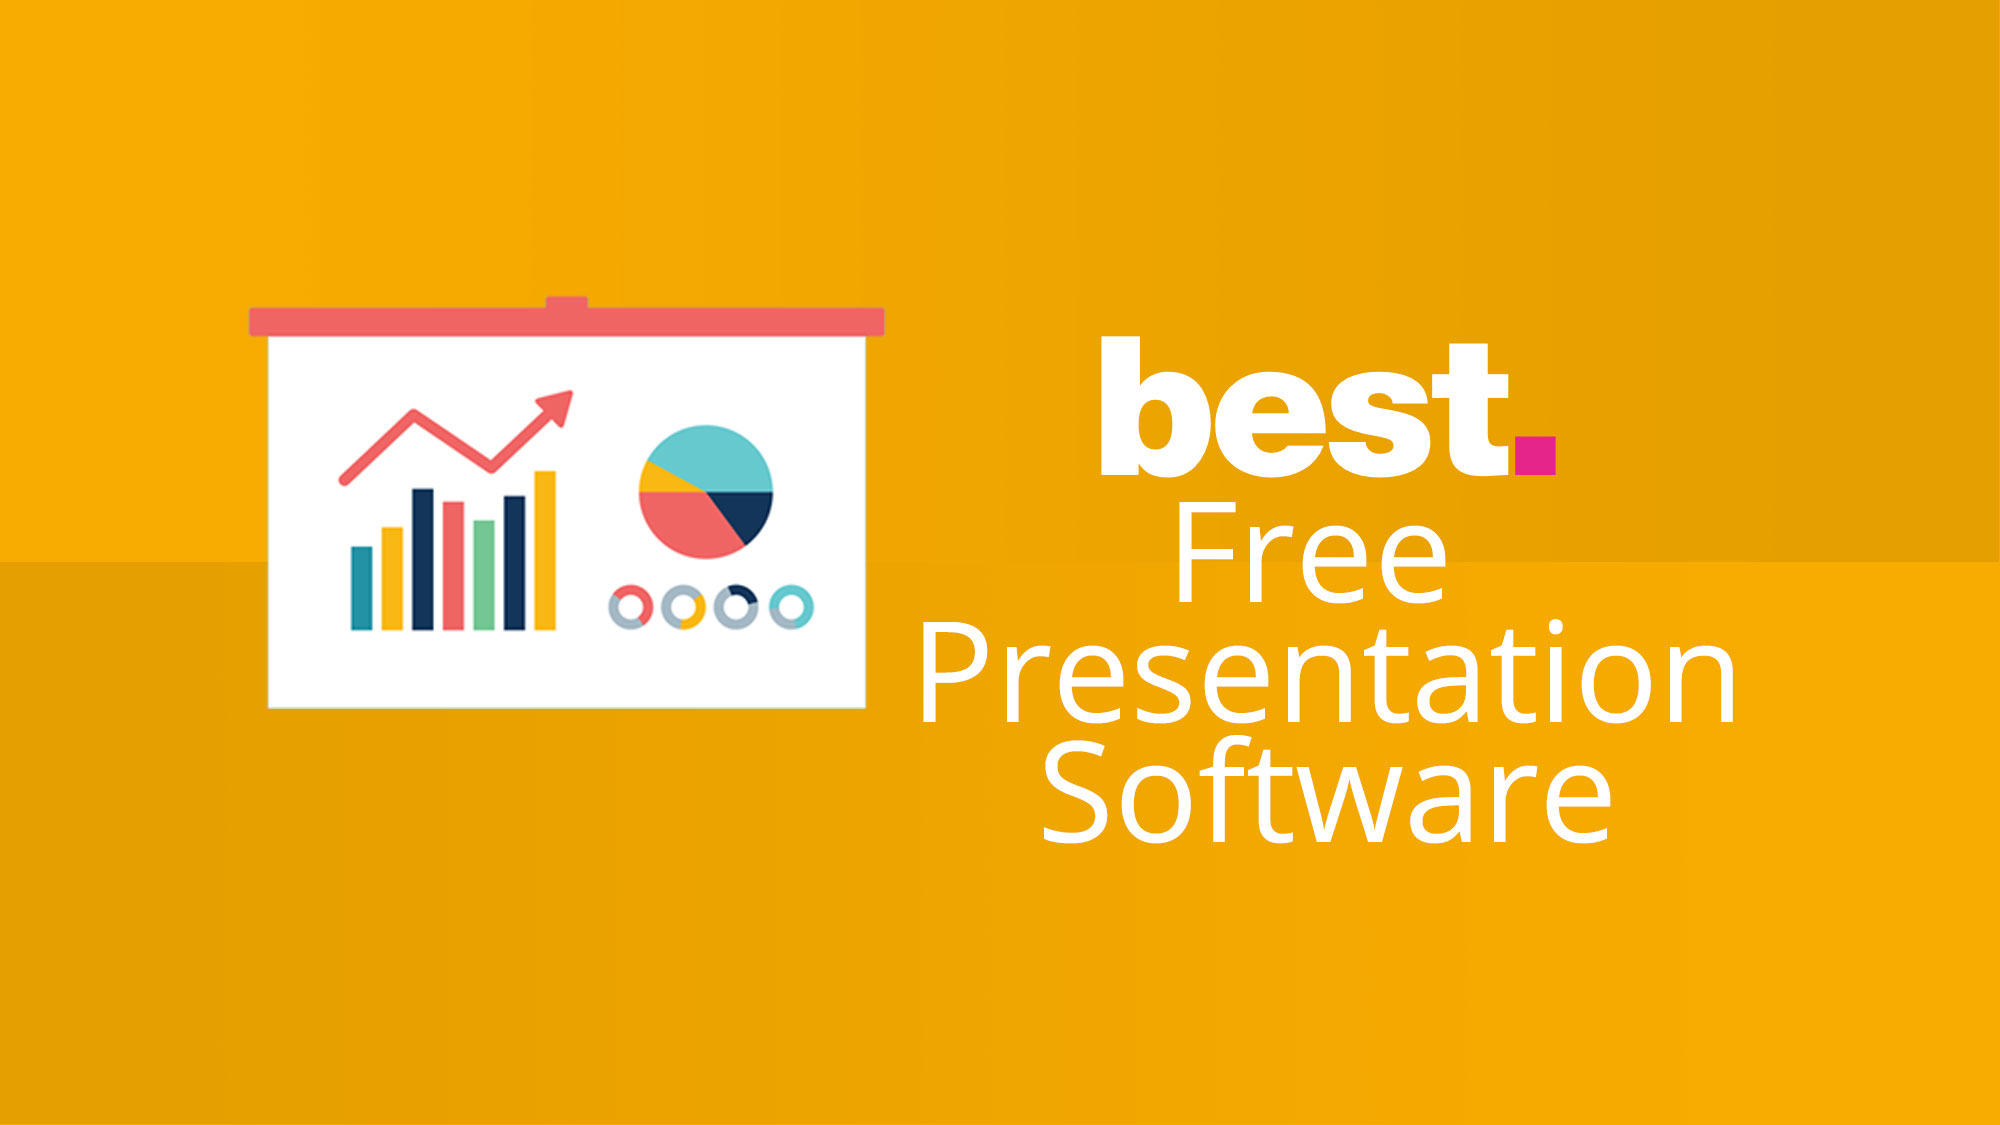 The best free presentation software 2020